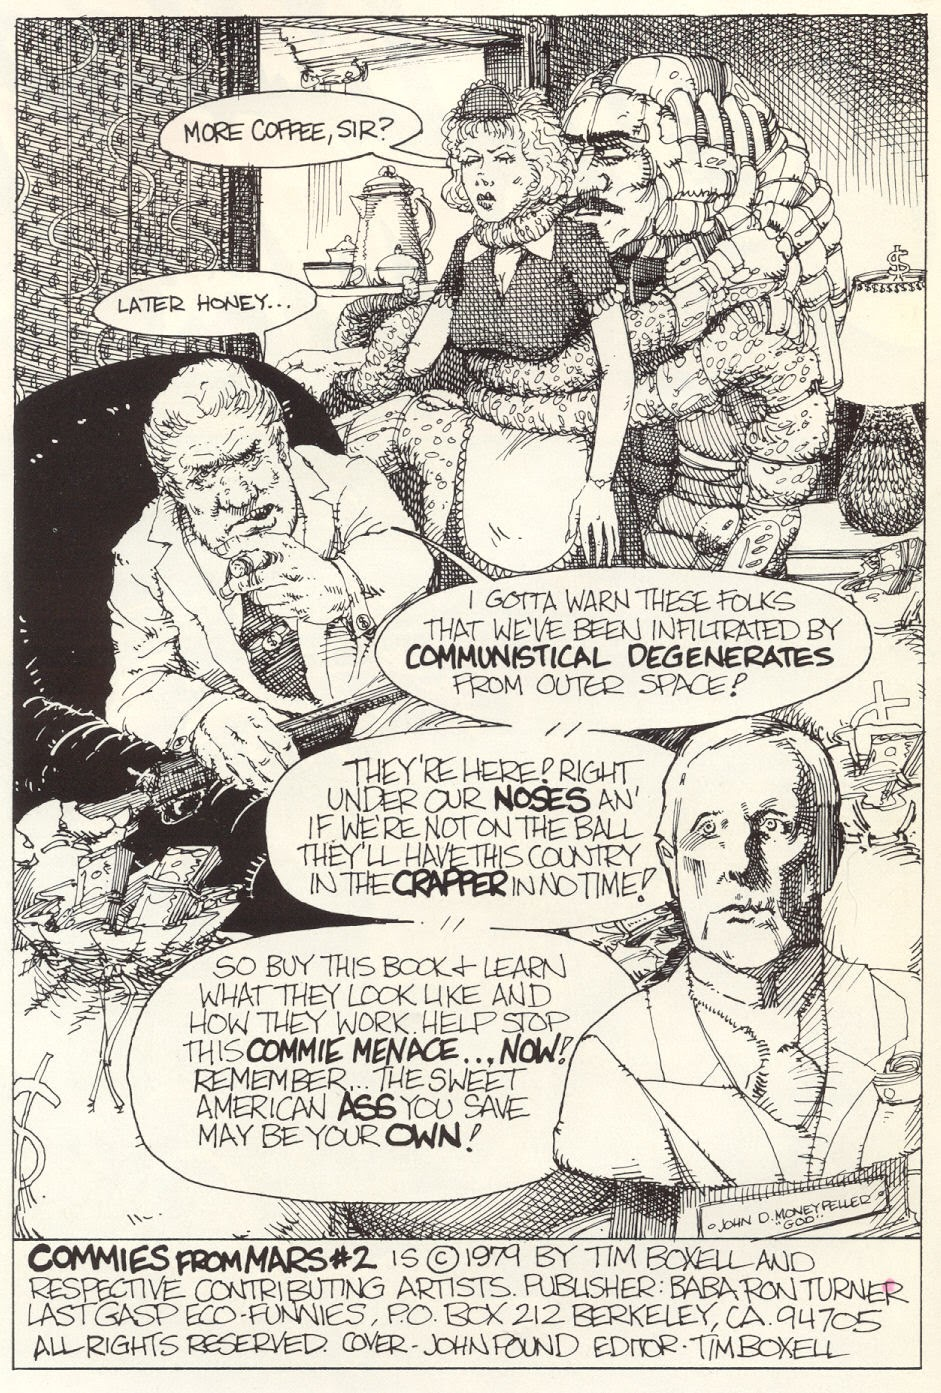 Commies from Mars: The Red Planet issue 2 - Page 3